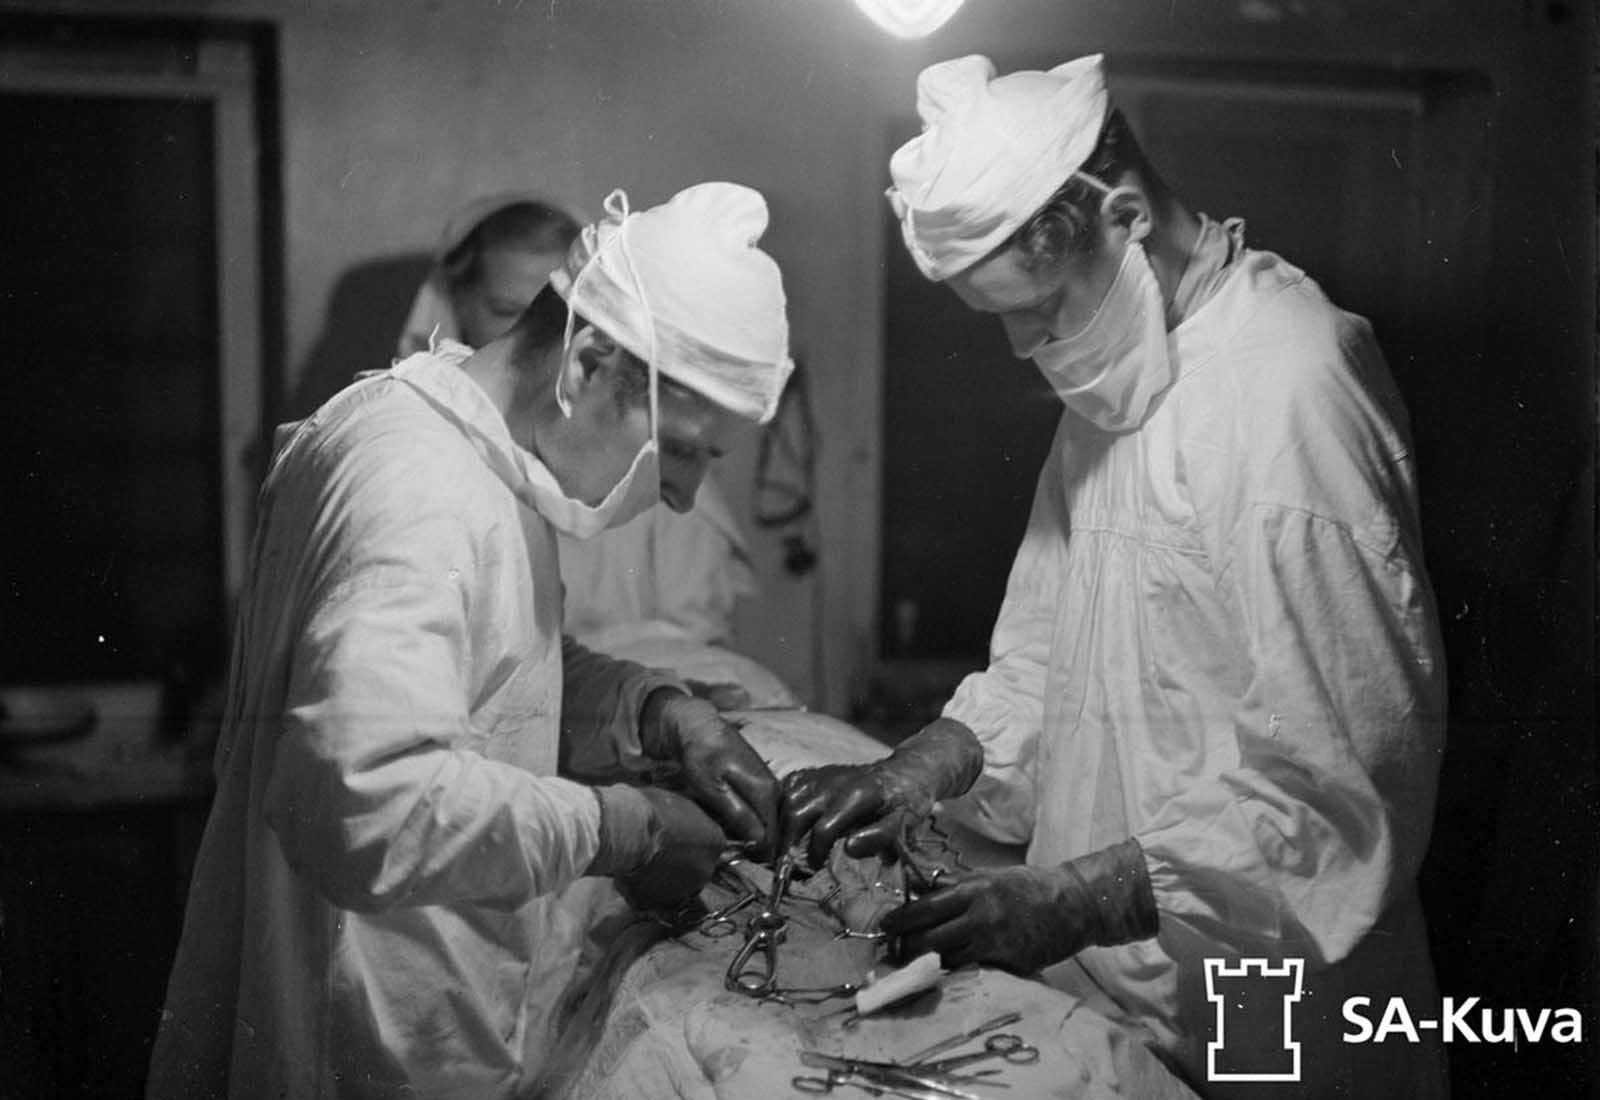 Doctors perform abdominal surgery on a wounded captain.